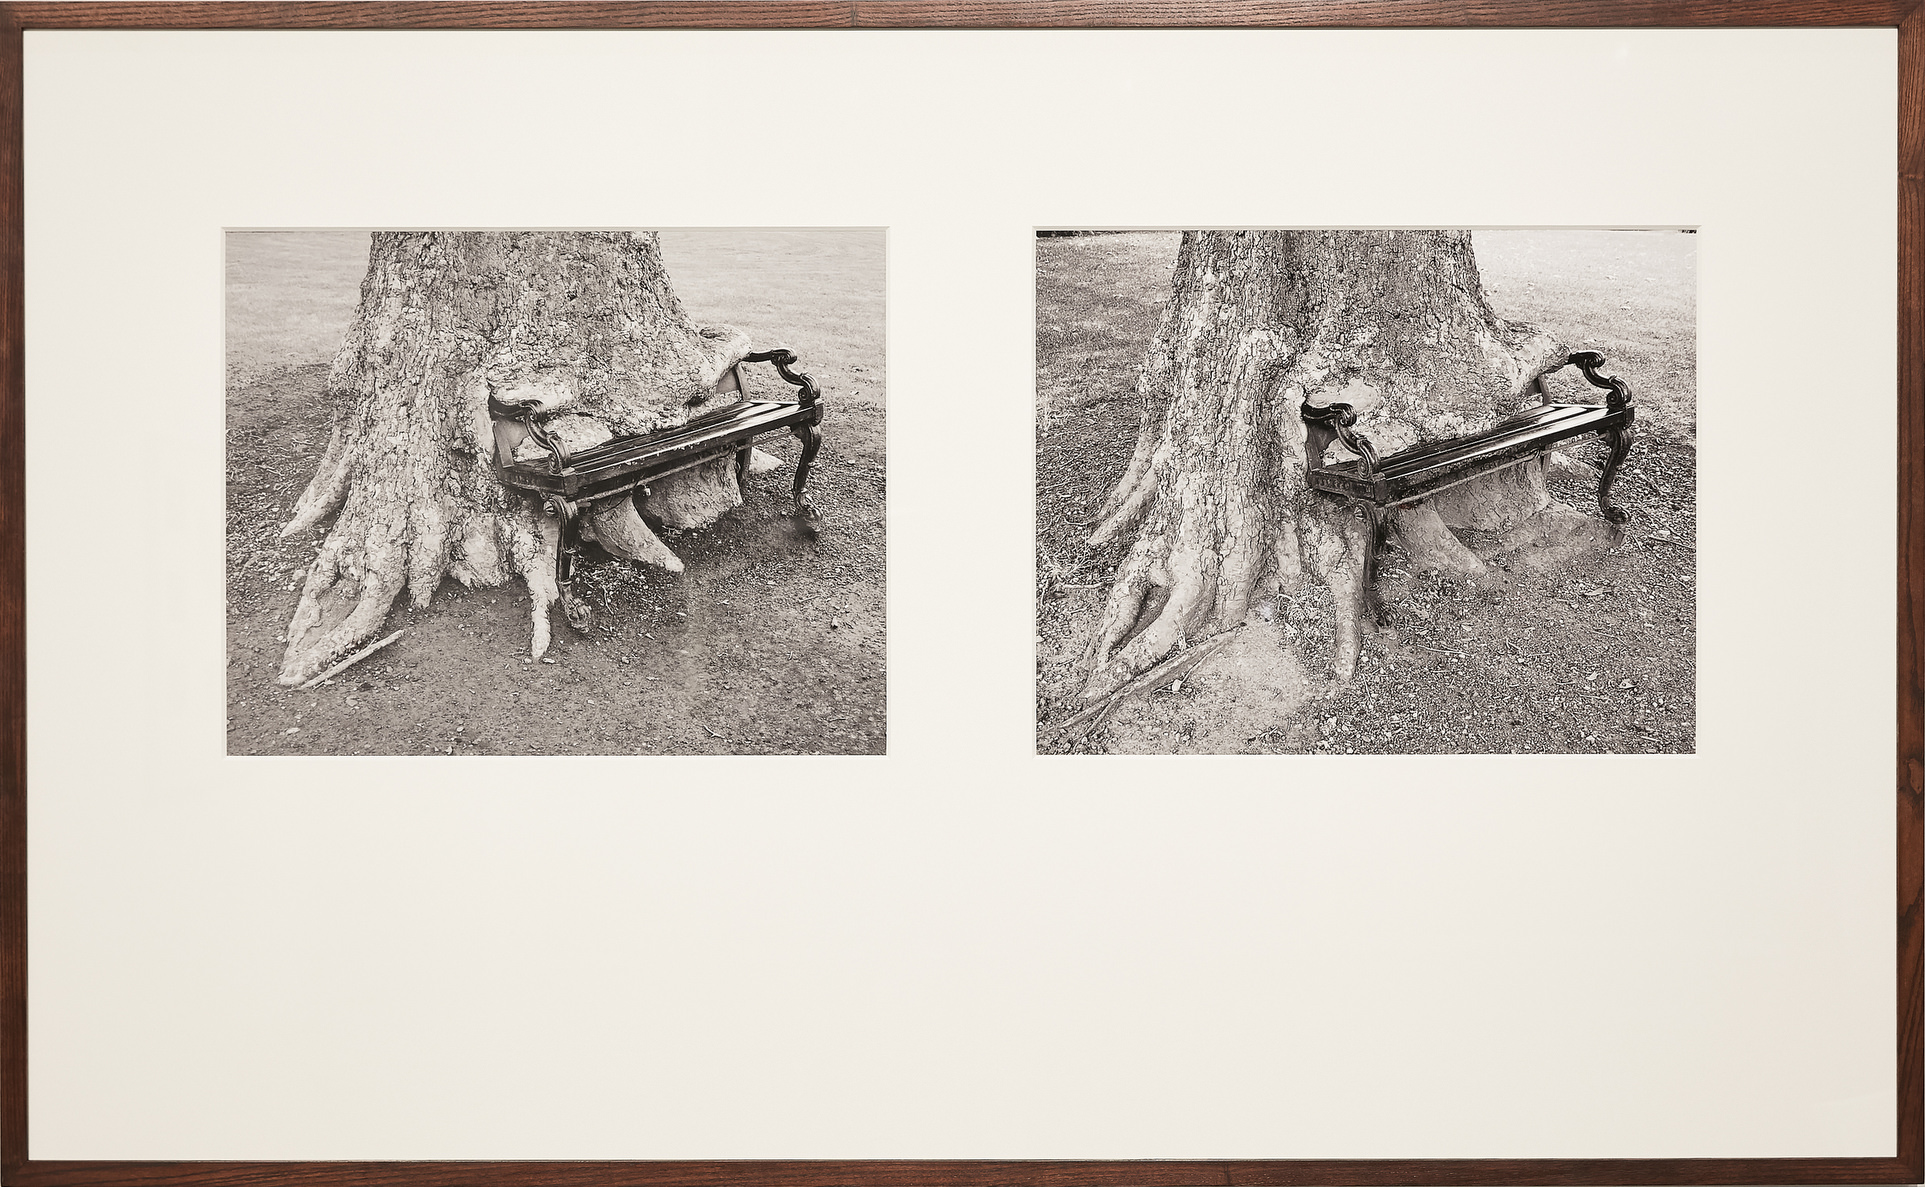 Sean Lynch, The Hungry Tree, 2017, 2 photographic prints in one frame, 98×143 cm